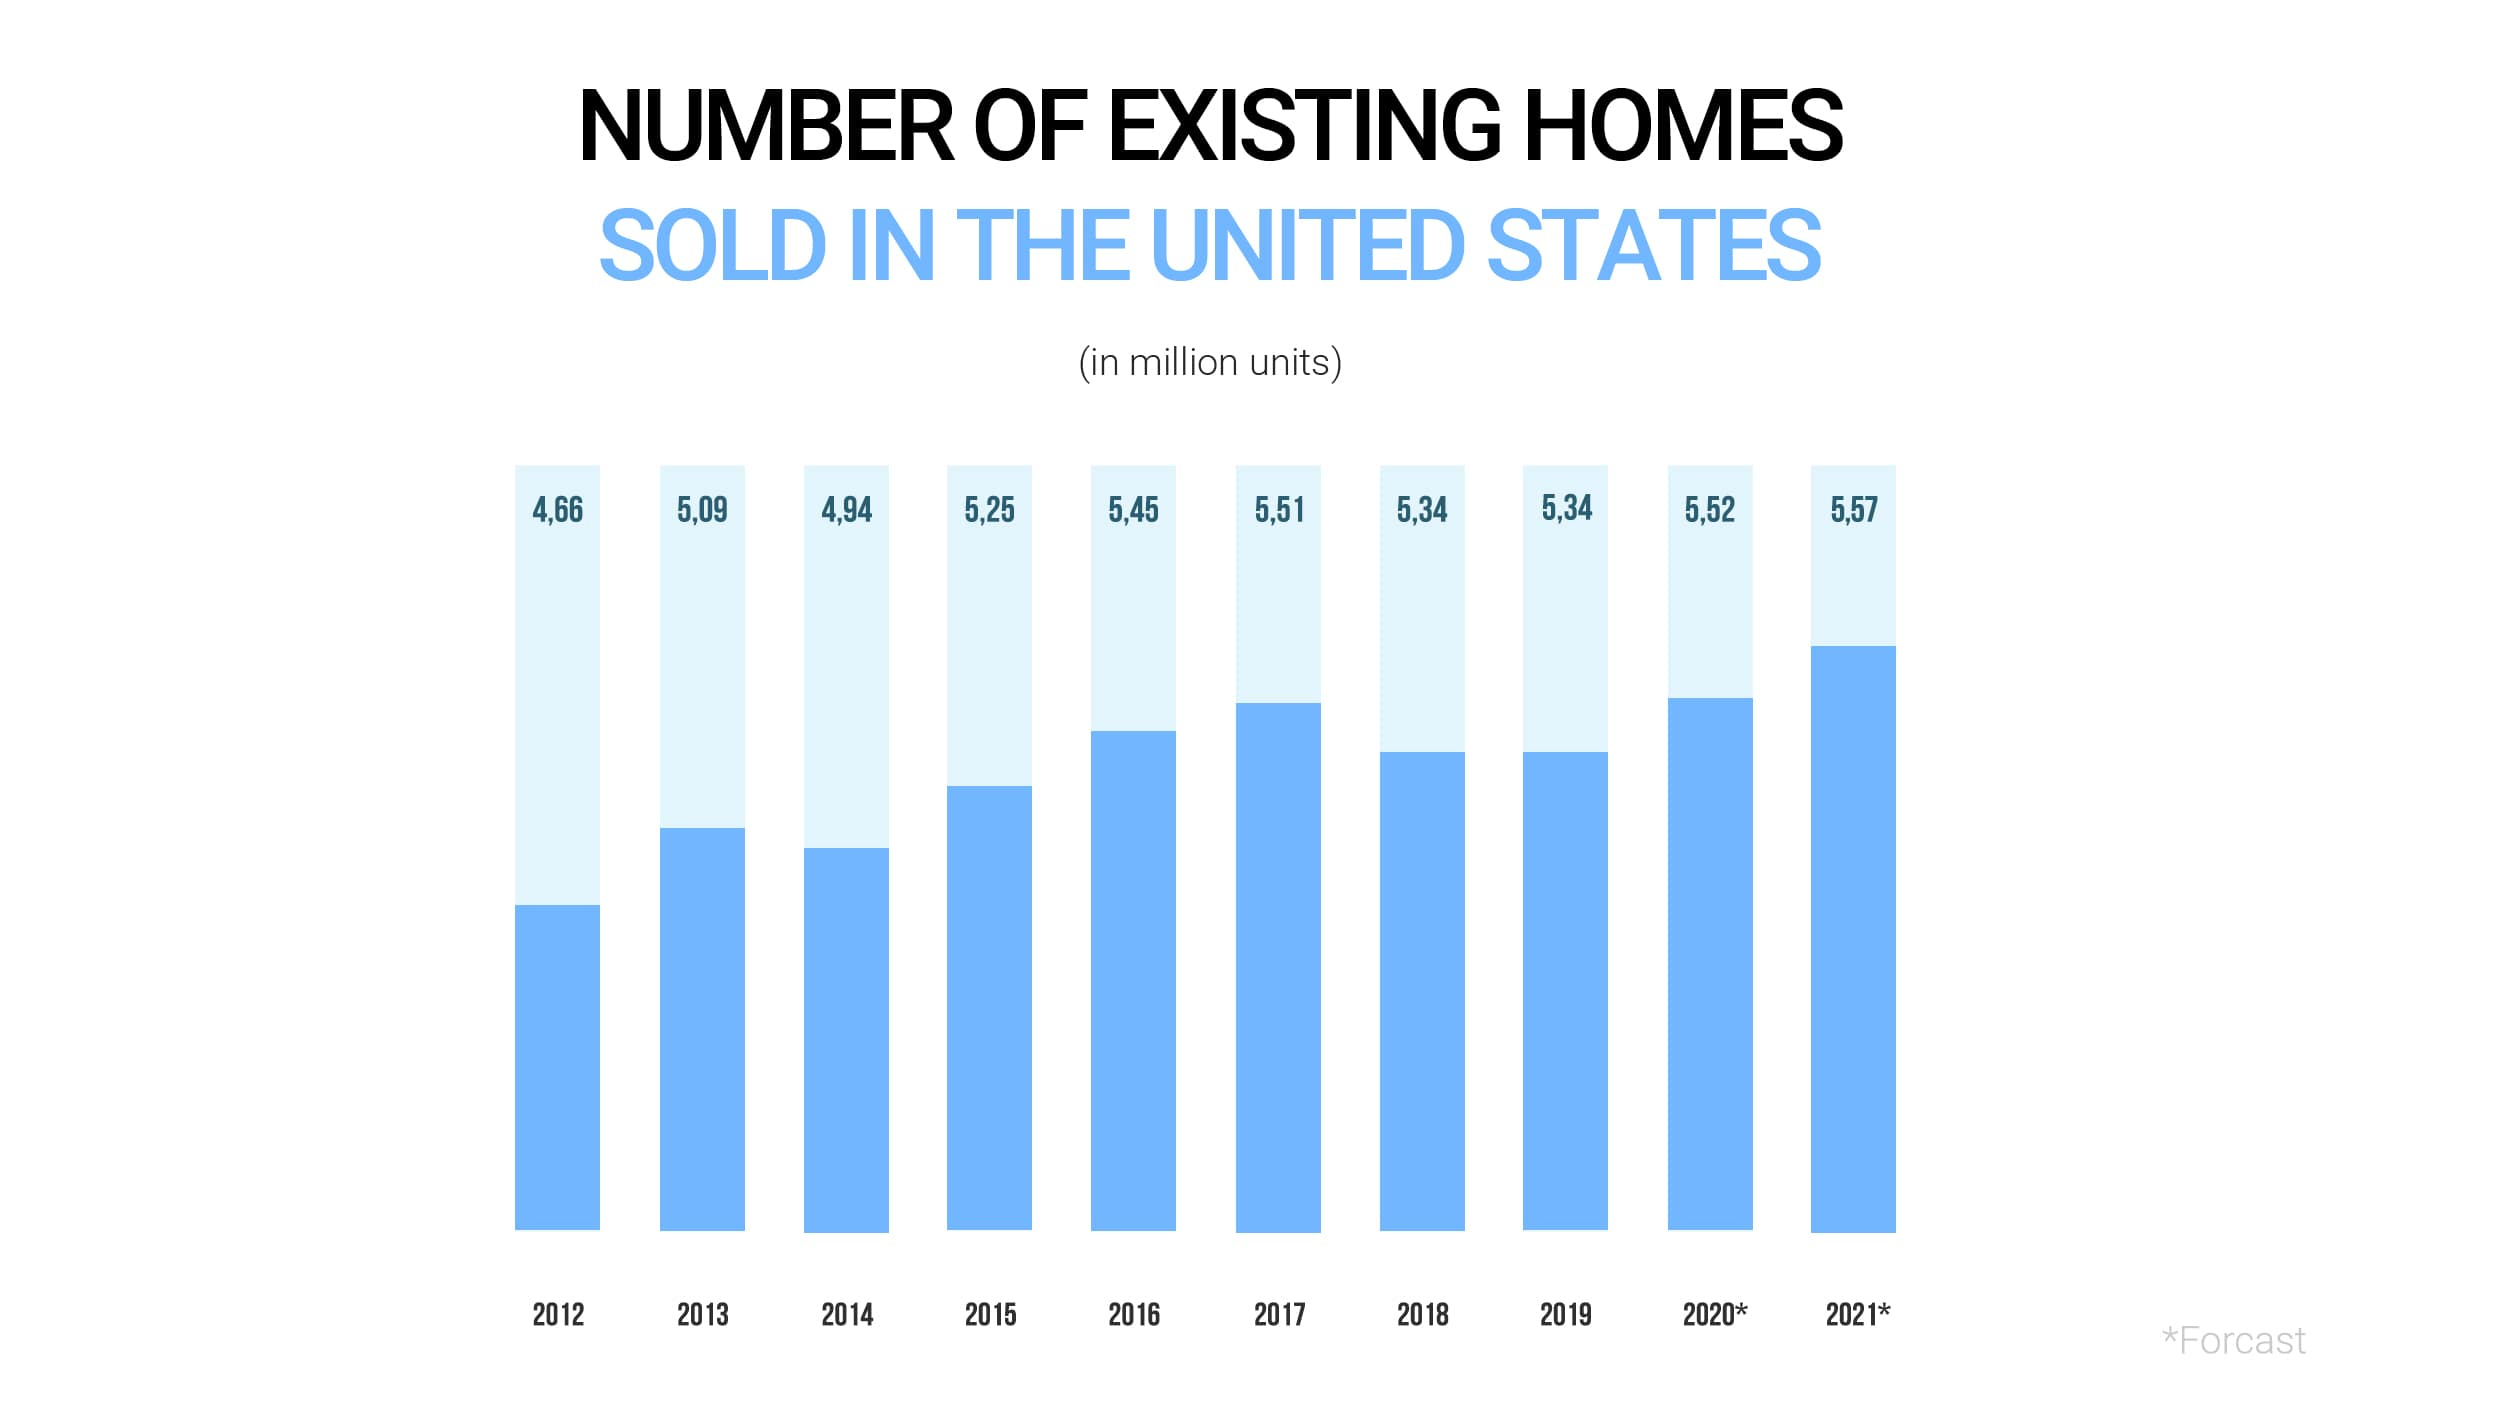 Number of existing homes sold in the United States from 2012 to 2021